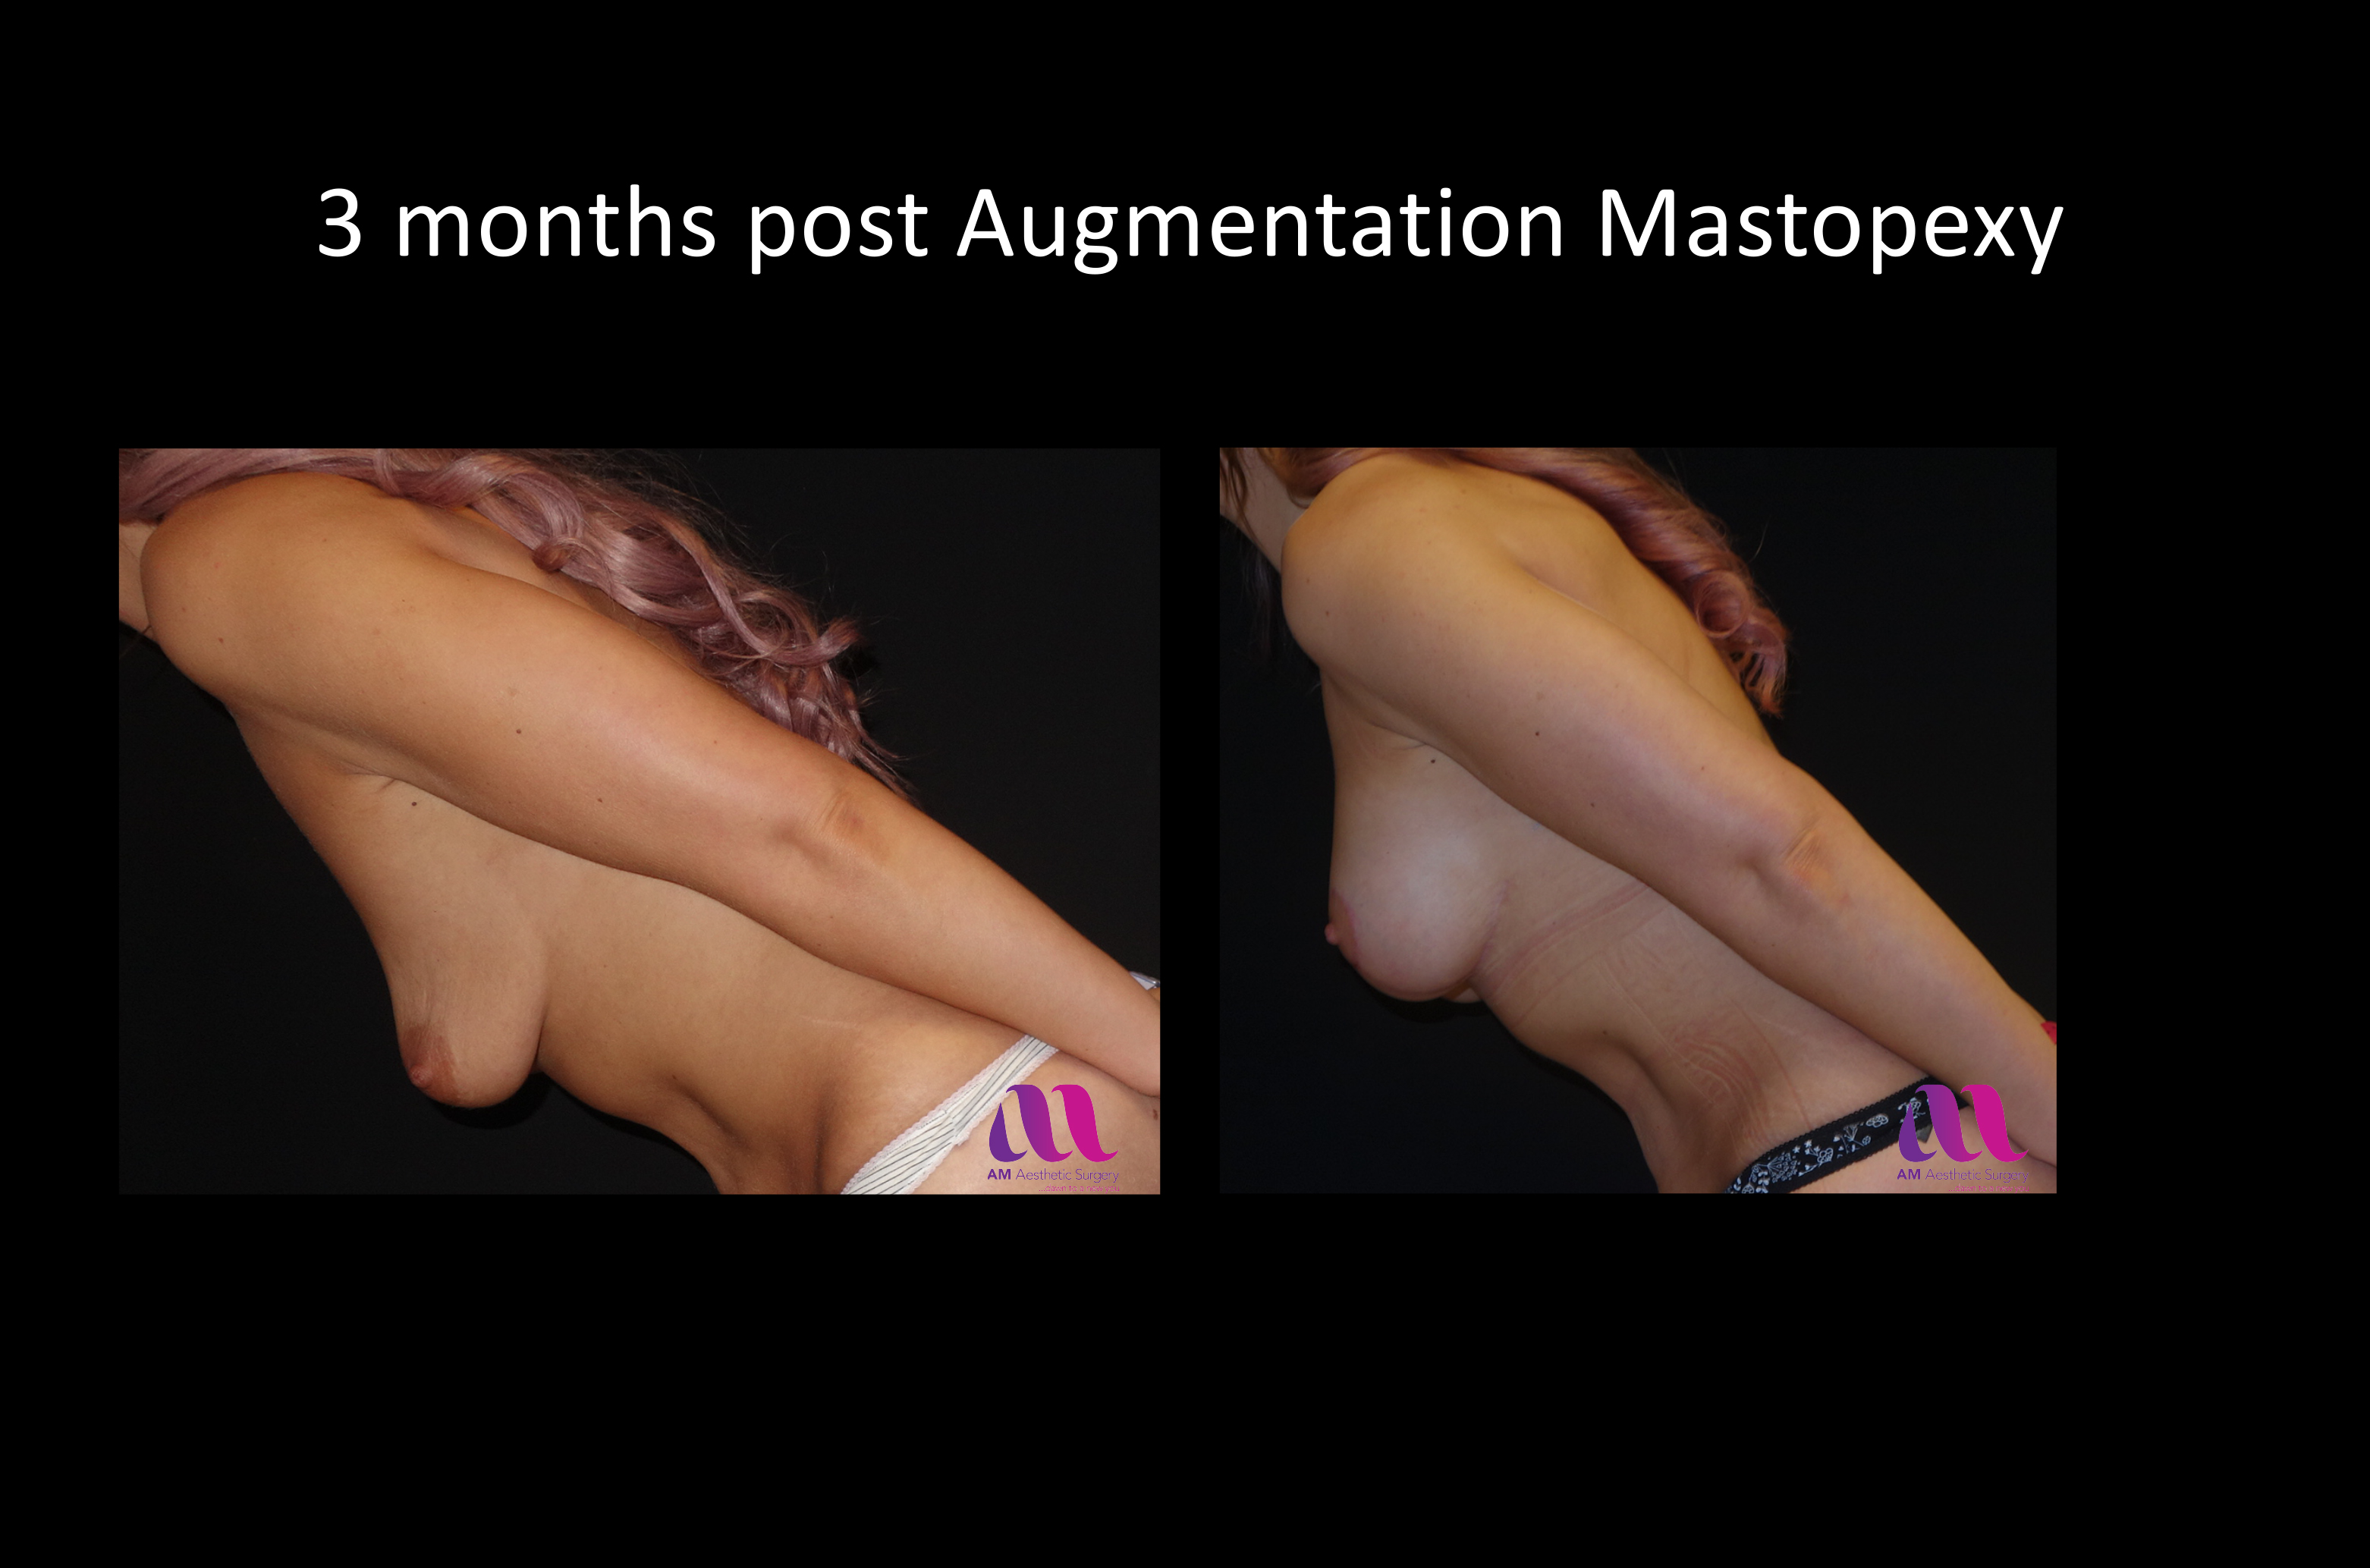 Augmentation Mastopexy3c